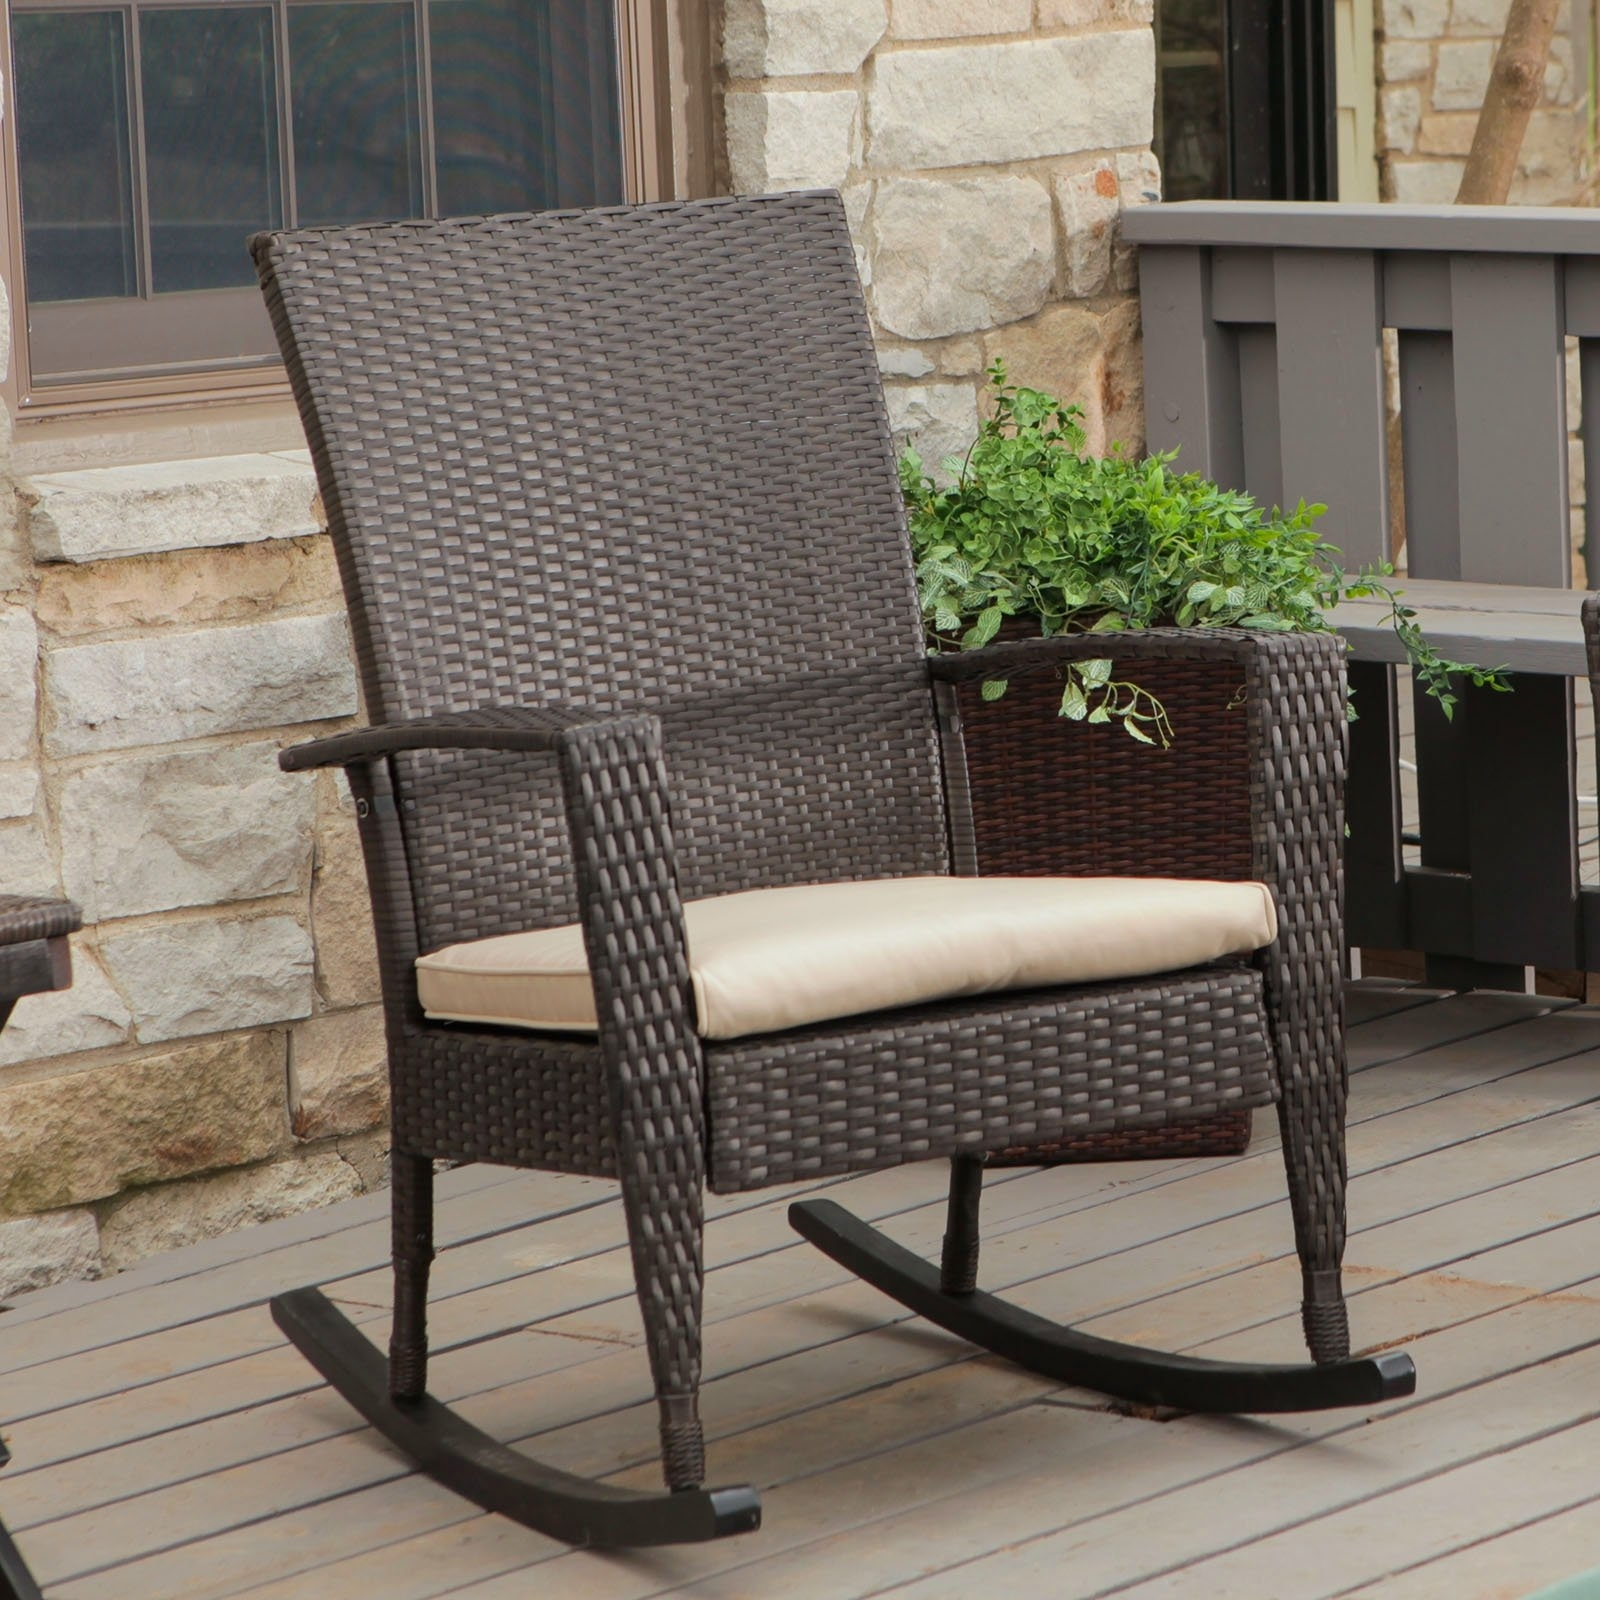 Outdoor Wicker Rocking Chairs Design — Wilson Home Ideas : How Oil Regarding Patio Furniture Rocking Benches (View 12 of 15)